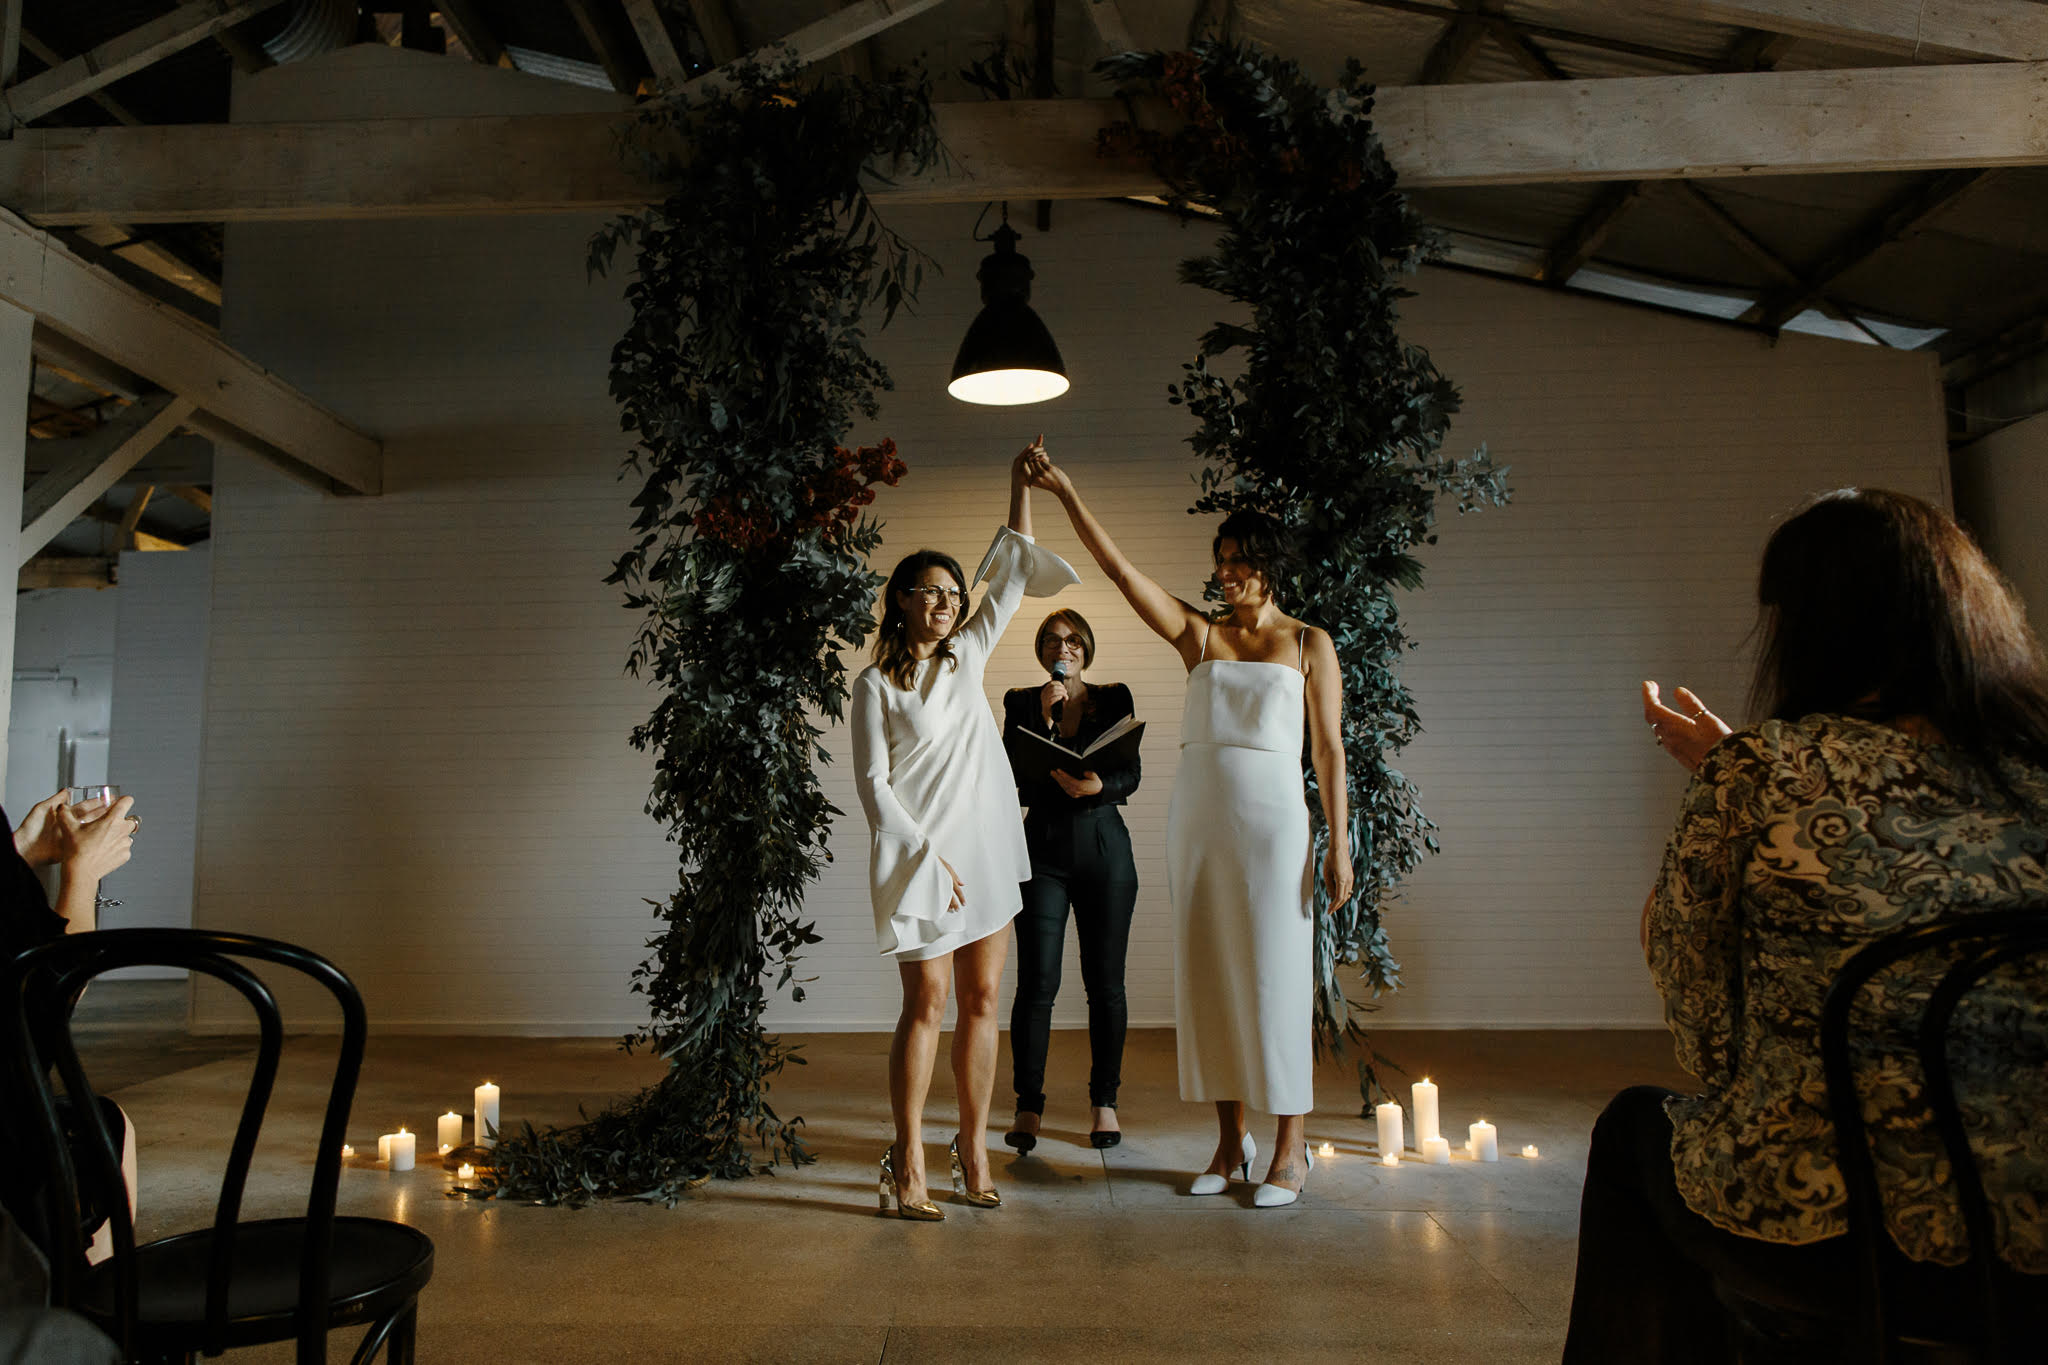 Anna and Anna's wedding at Gather and Tailor, August 2018.    Photography by Oli Sansom www.olisansom.com